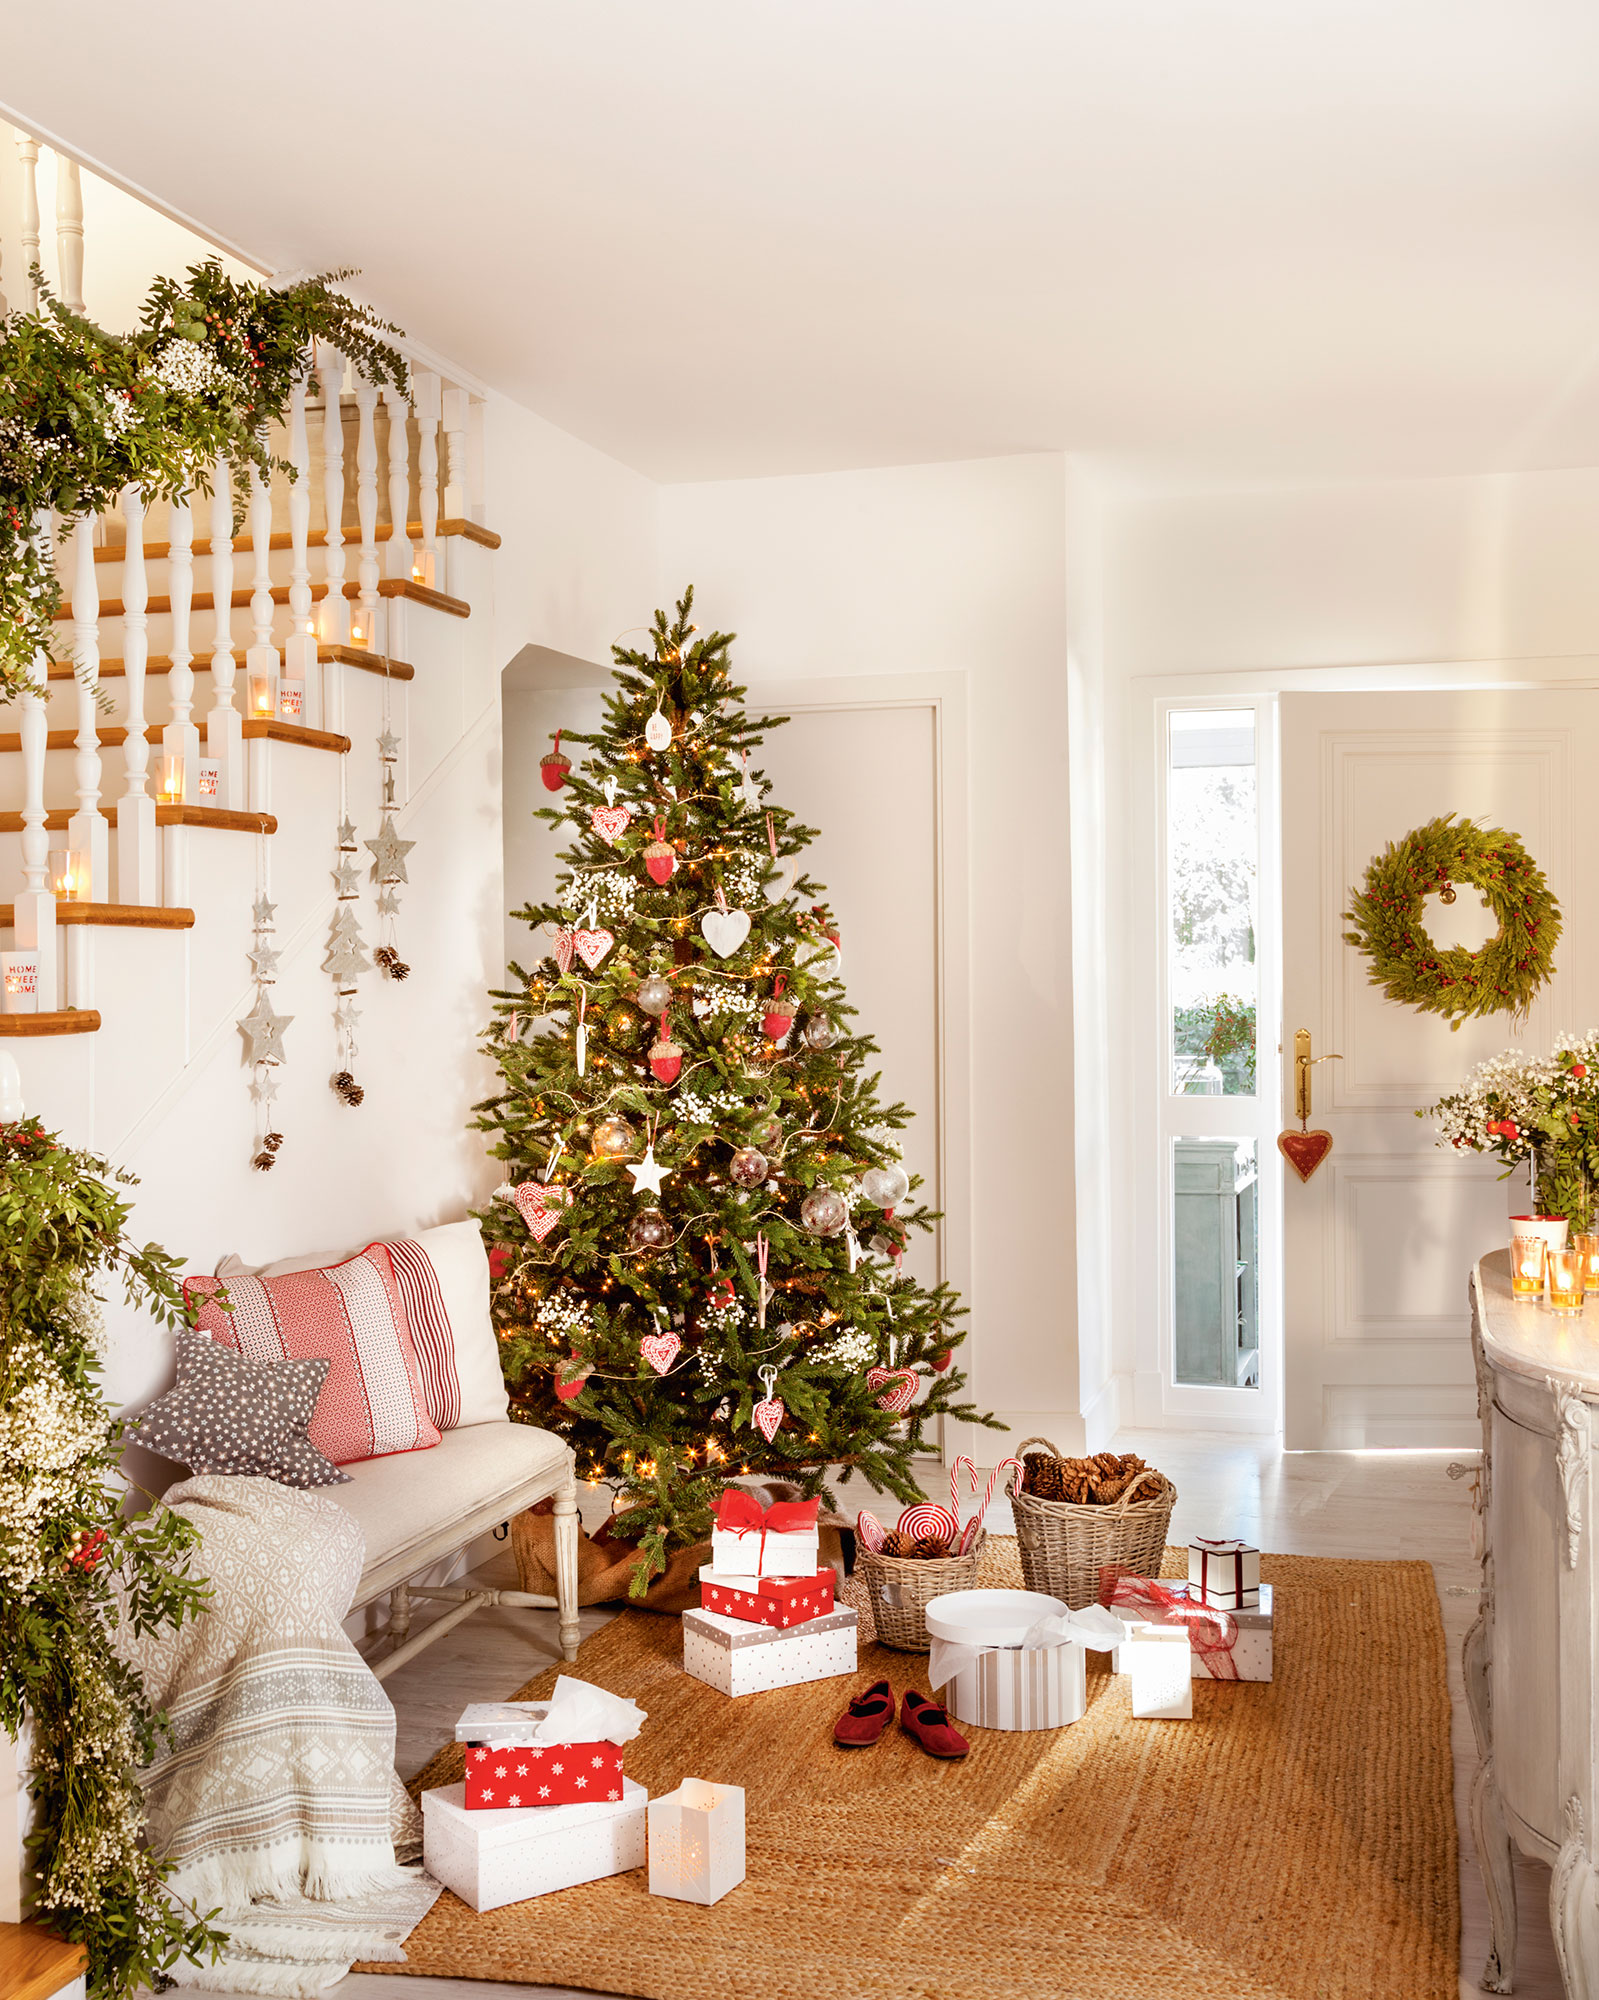 Navidad ideas para decorar de verde natural tu recibidor for Casas decoradas de navidad interiores